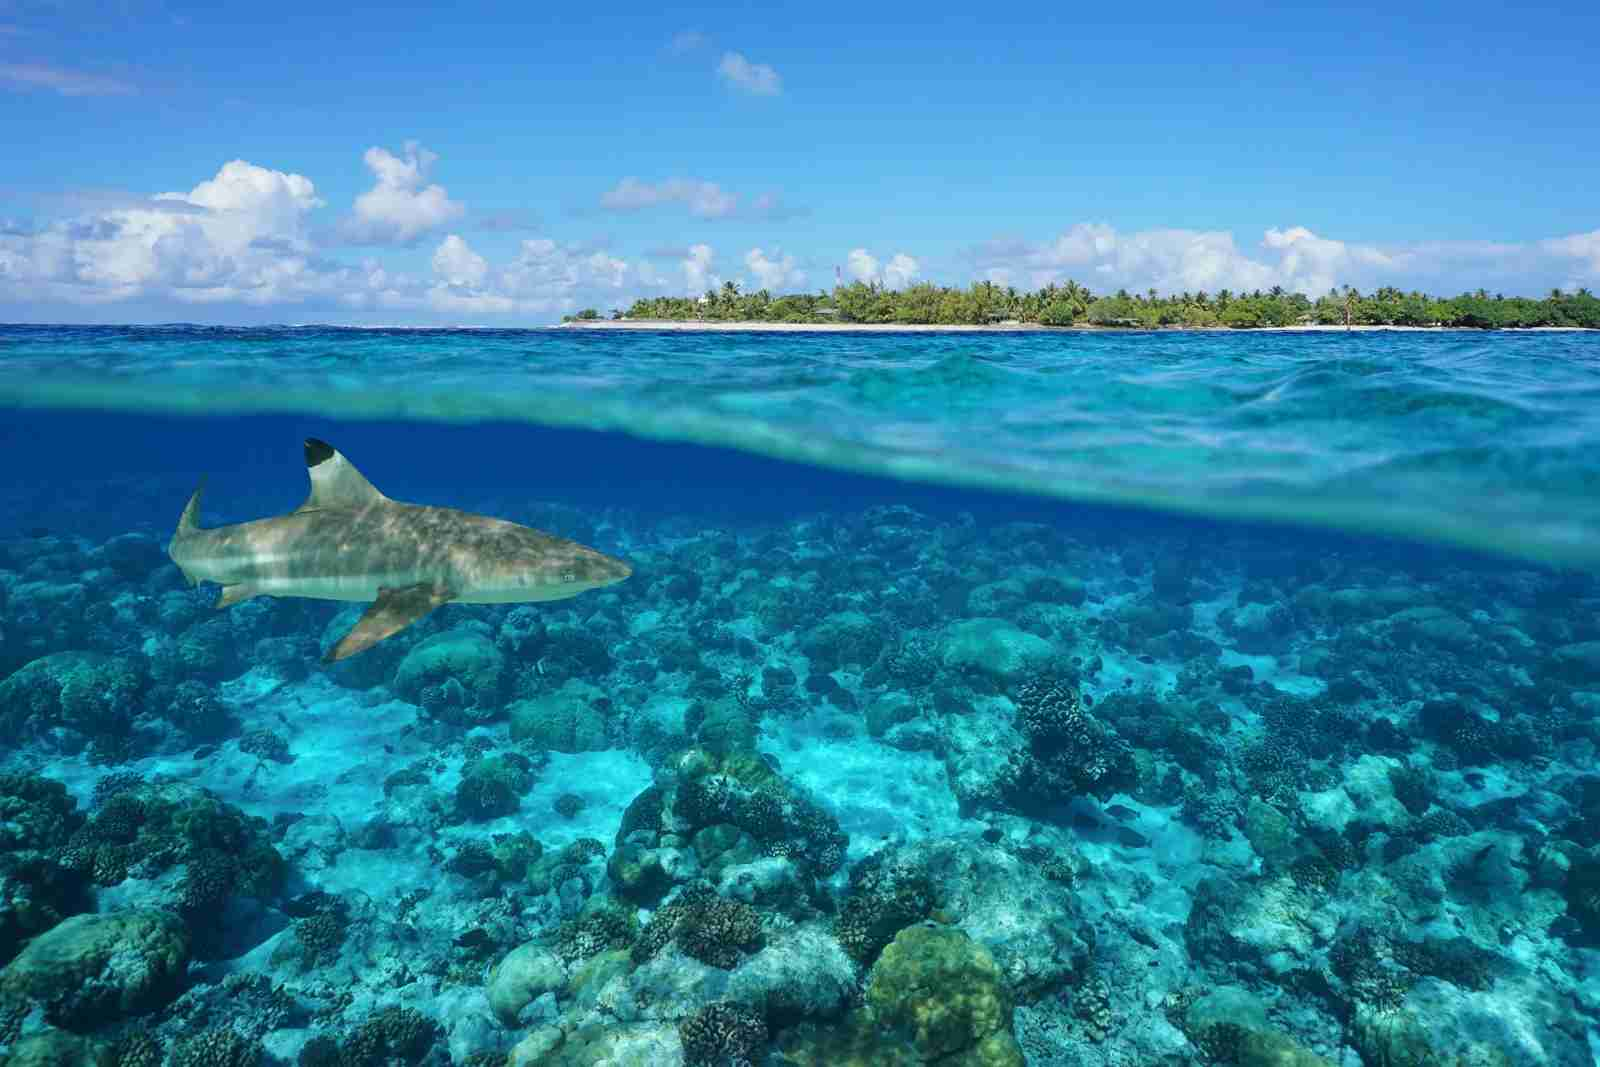 Tiputa pass at the Rangiroa atoll in French Polynesia. (Photo by Poly Damocean/Getty Images)